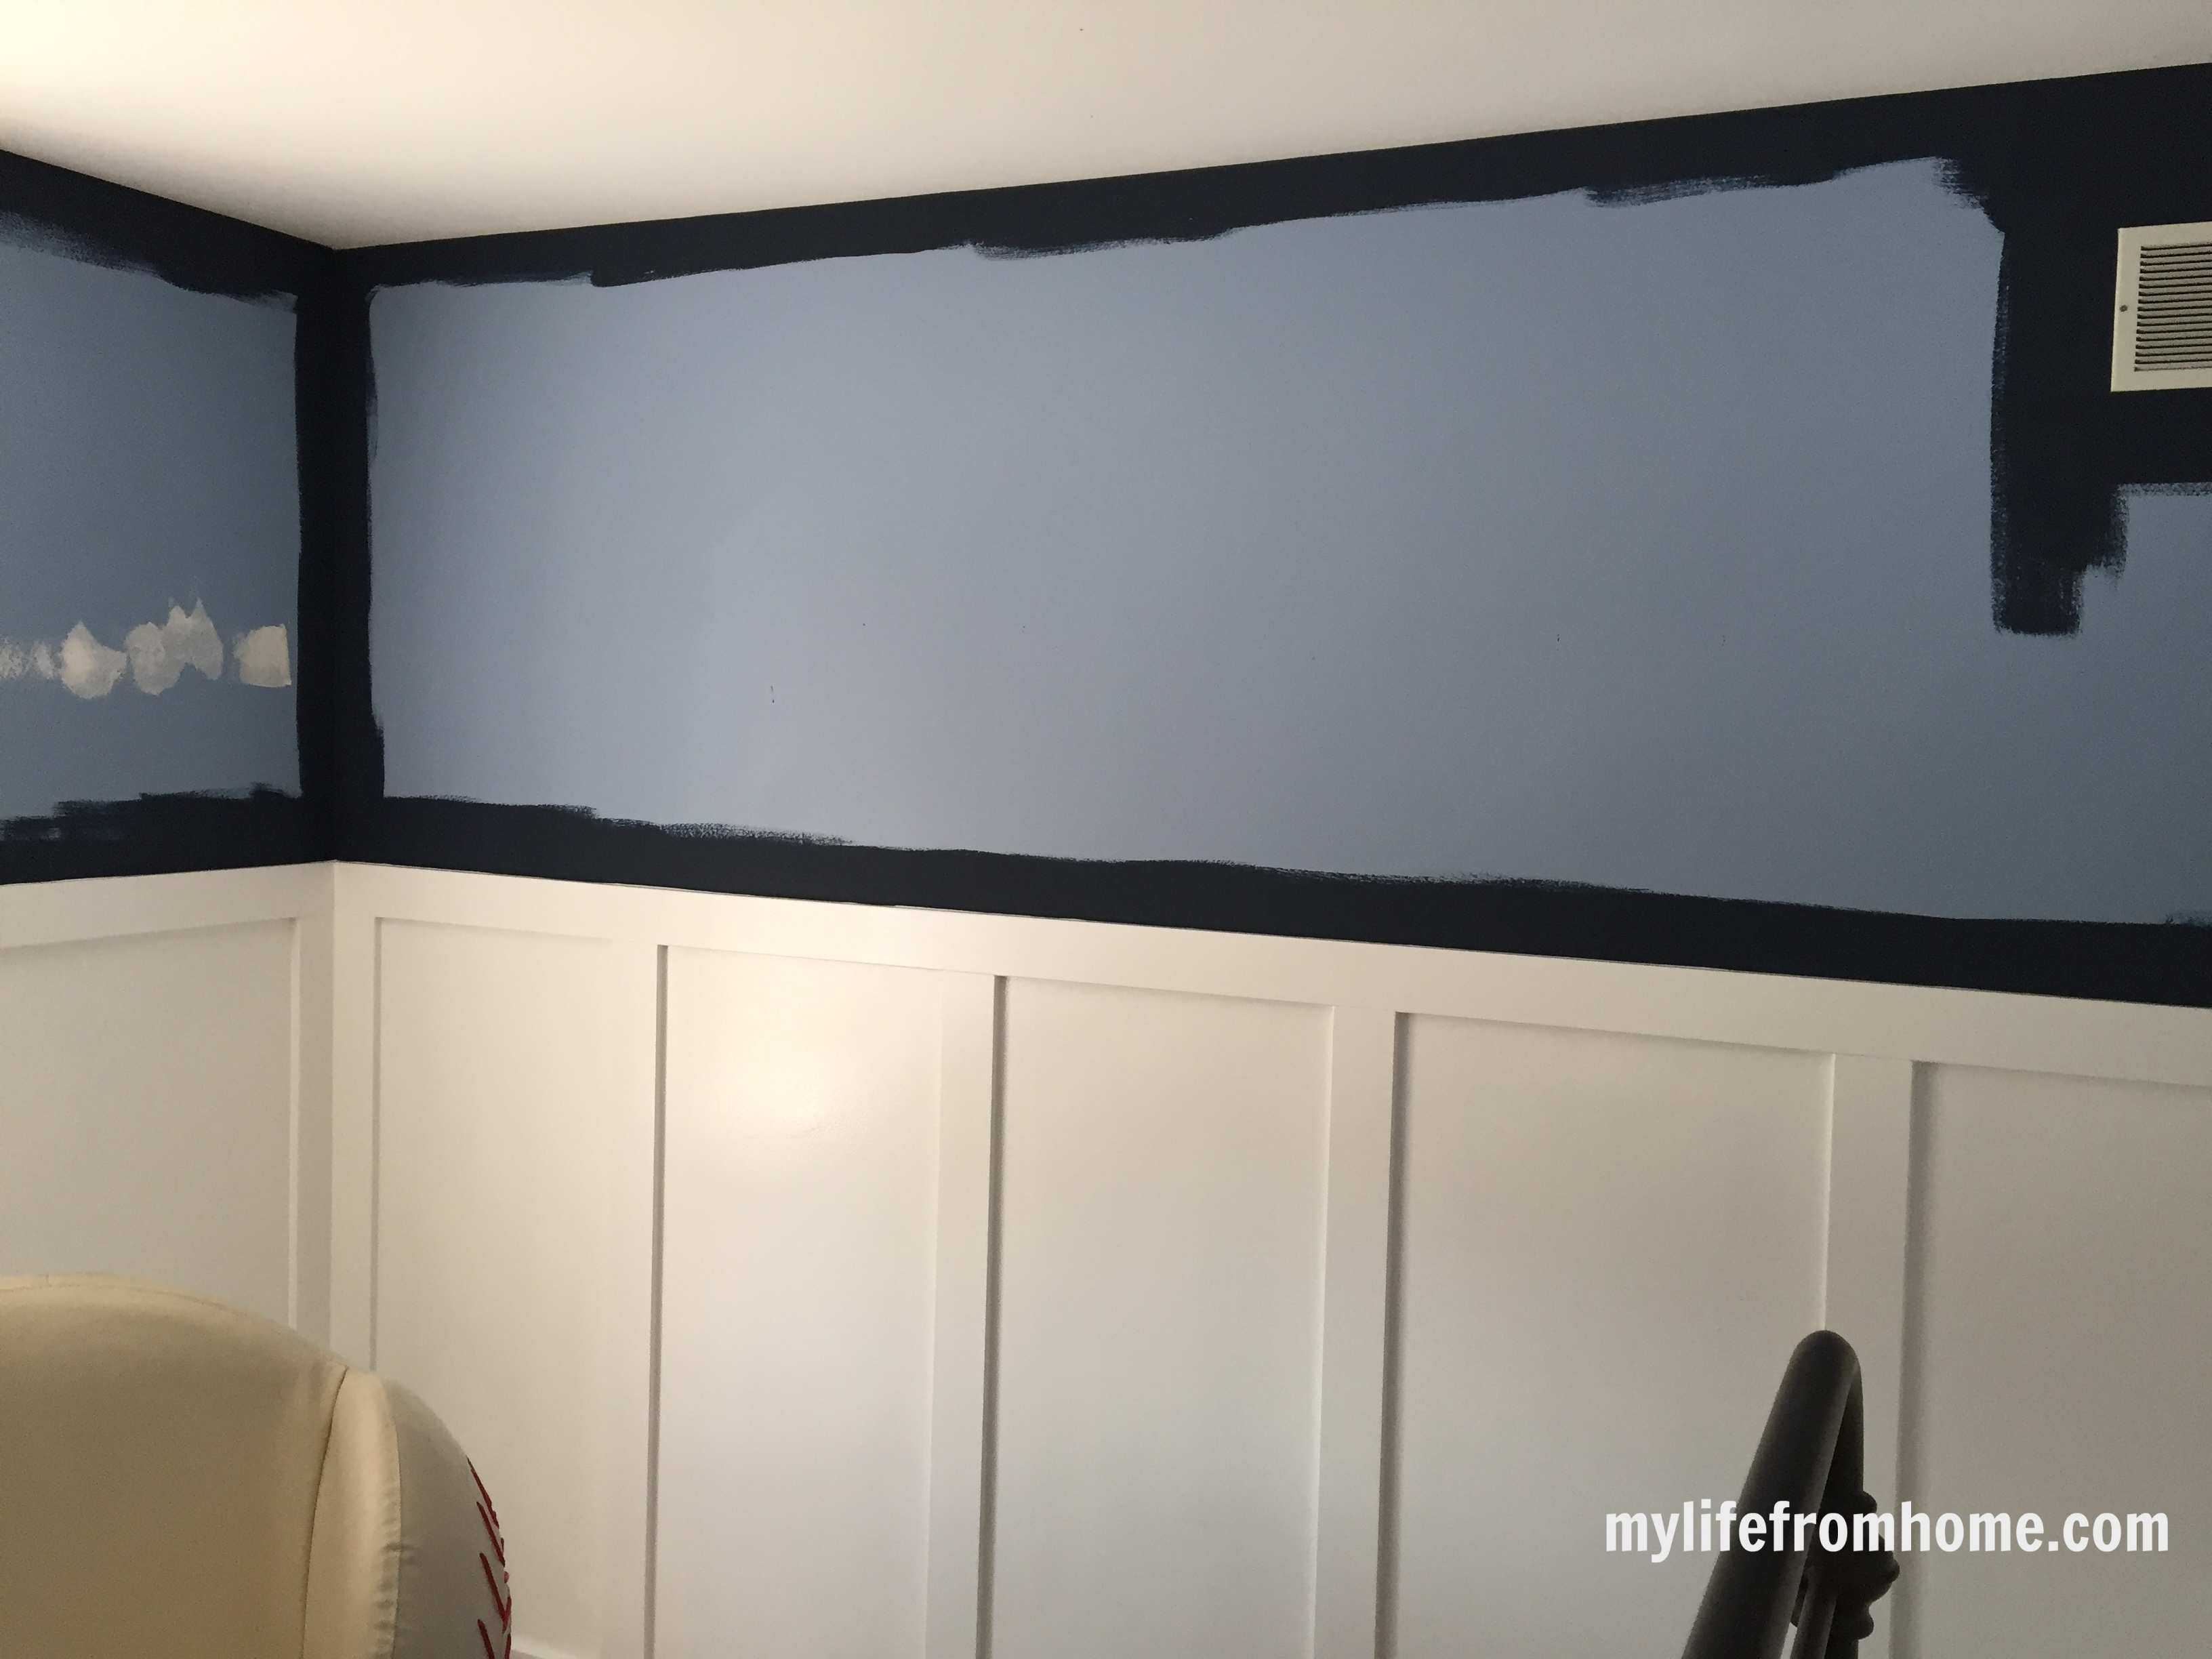 Board and Batten with Sherwin Williams Naval Blue Paint Going Up Above by www.whitecottagehomeandliving.com